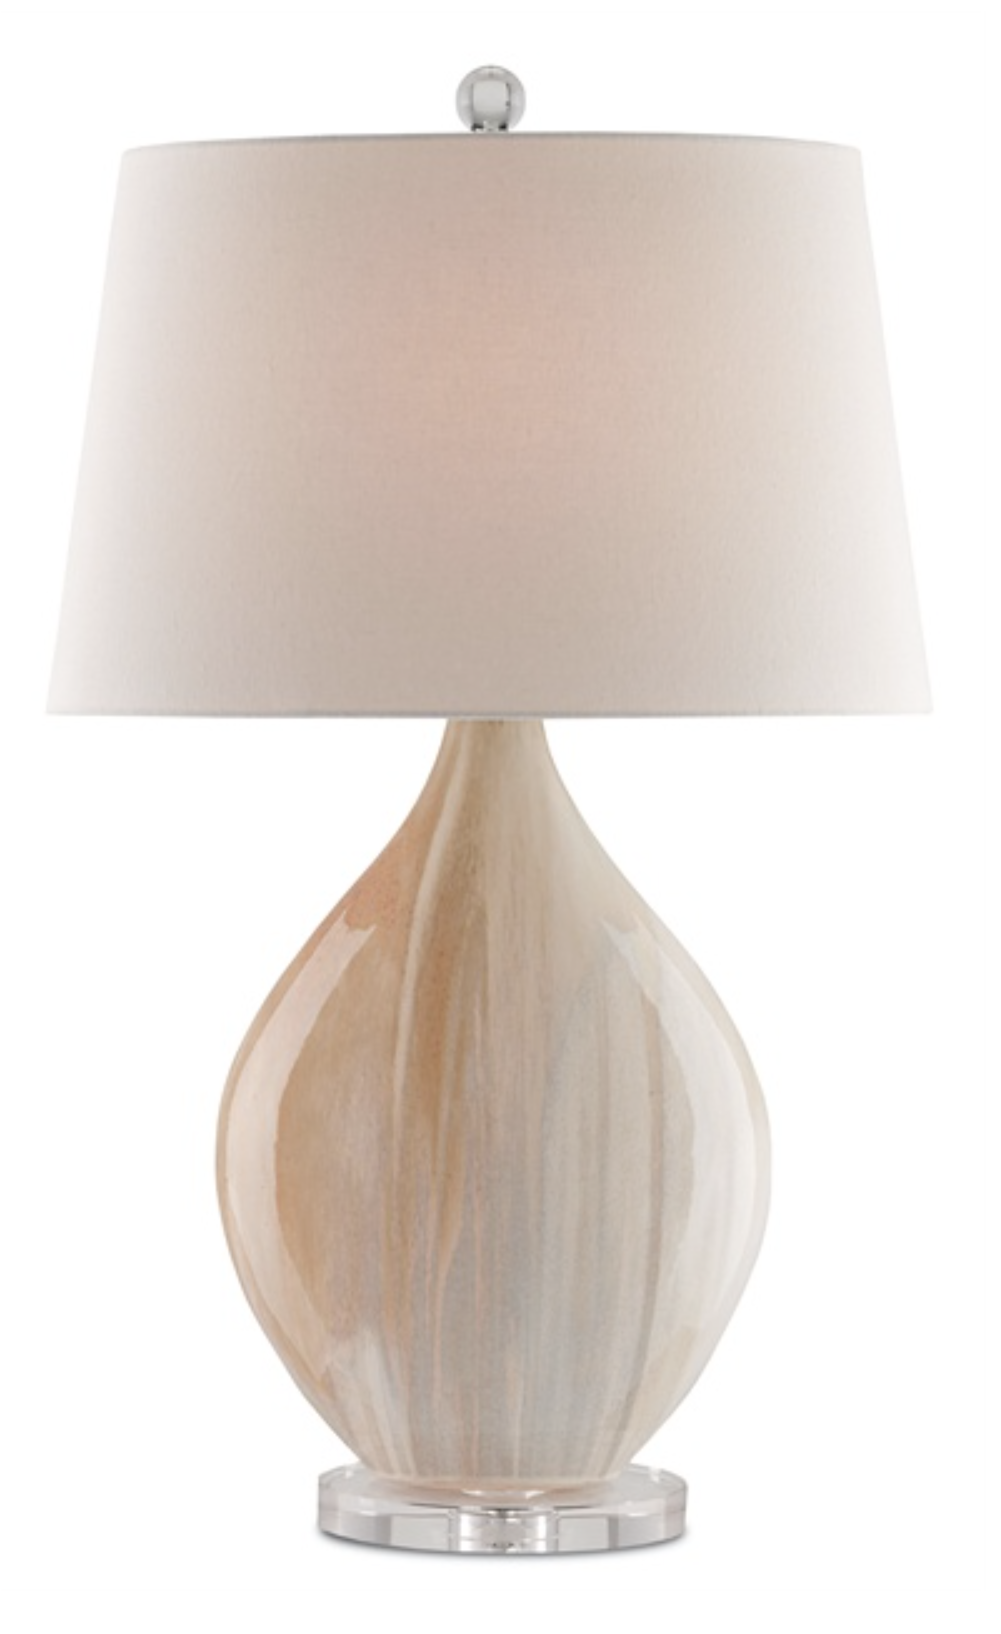 Opalescent Glass/Acrylic Table Lamp w/Linen Shade  19x10x32h  CC6111